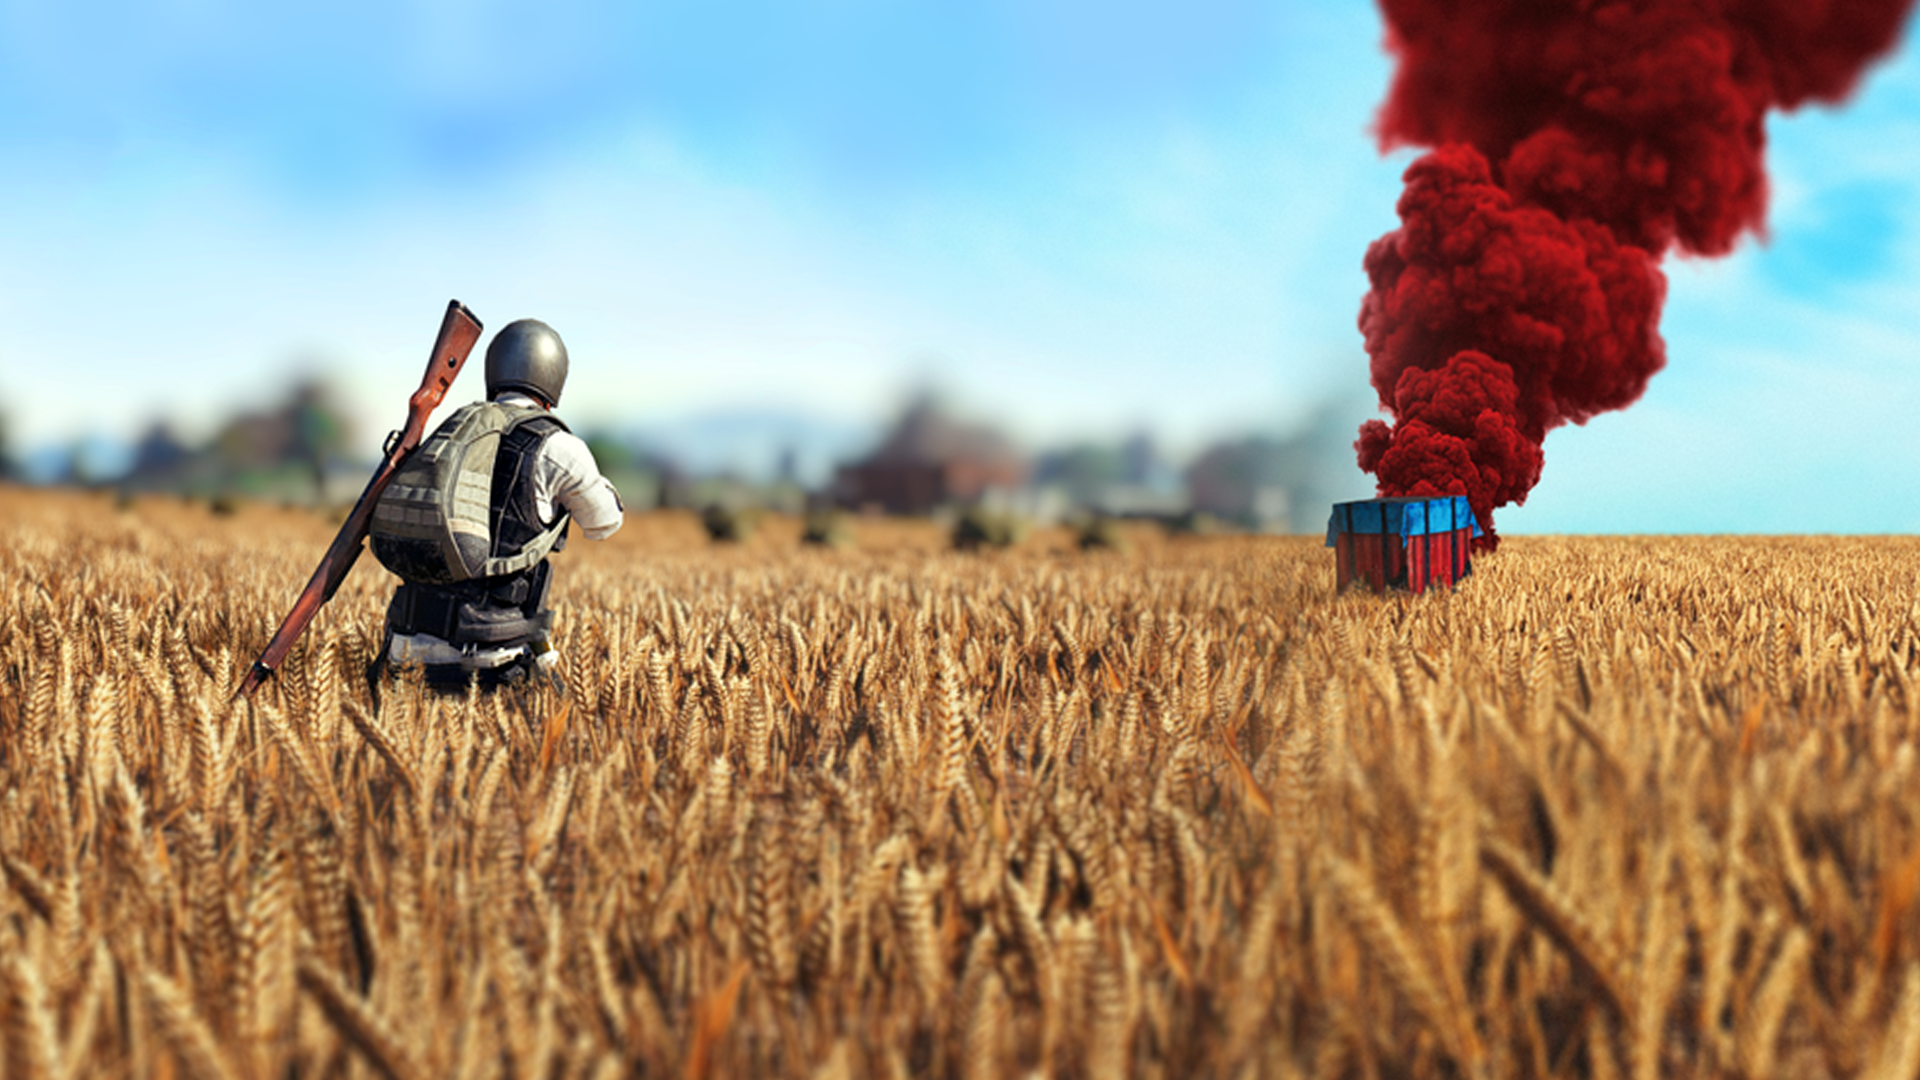 Pubg Hd Wallpaper Hintergrund 1920x1080 Id 887546 Wallpaper